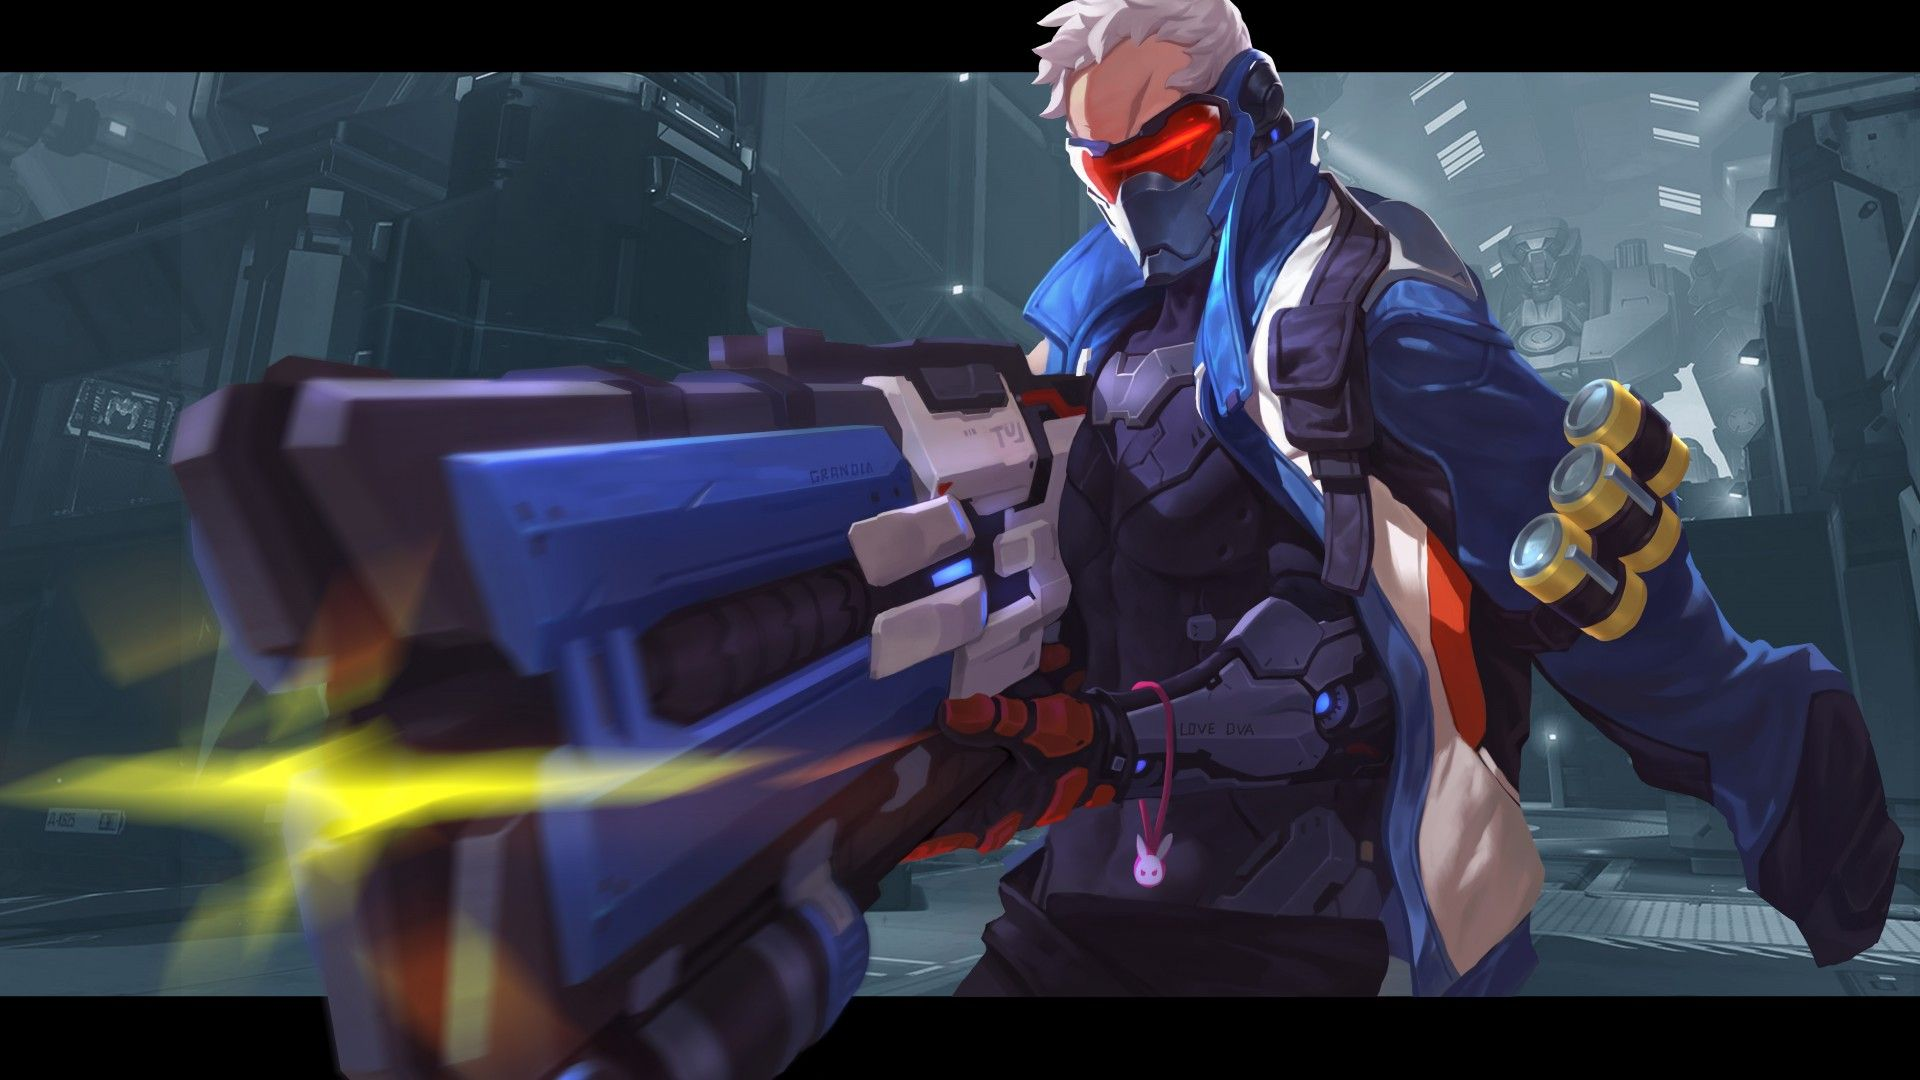 Download Wallpapers Of Soldier 76 Overwatch Hd 8k Games 3723 Available In Hd 4k Resolutions For Desktop Mob Soldier 76 Overwatch Overwatch Wallpapers